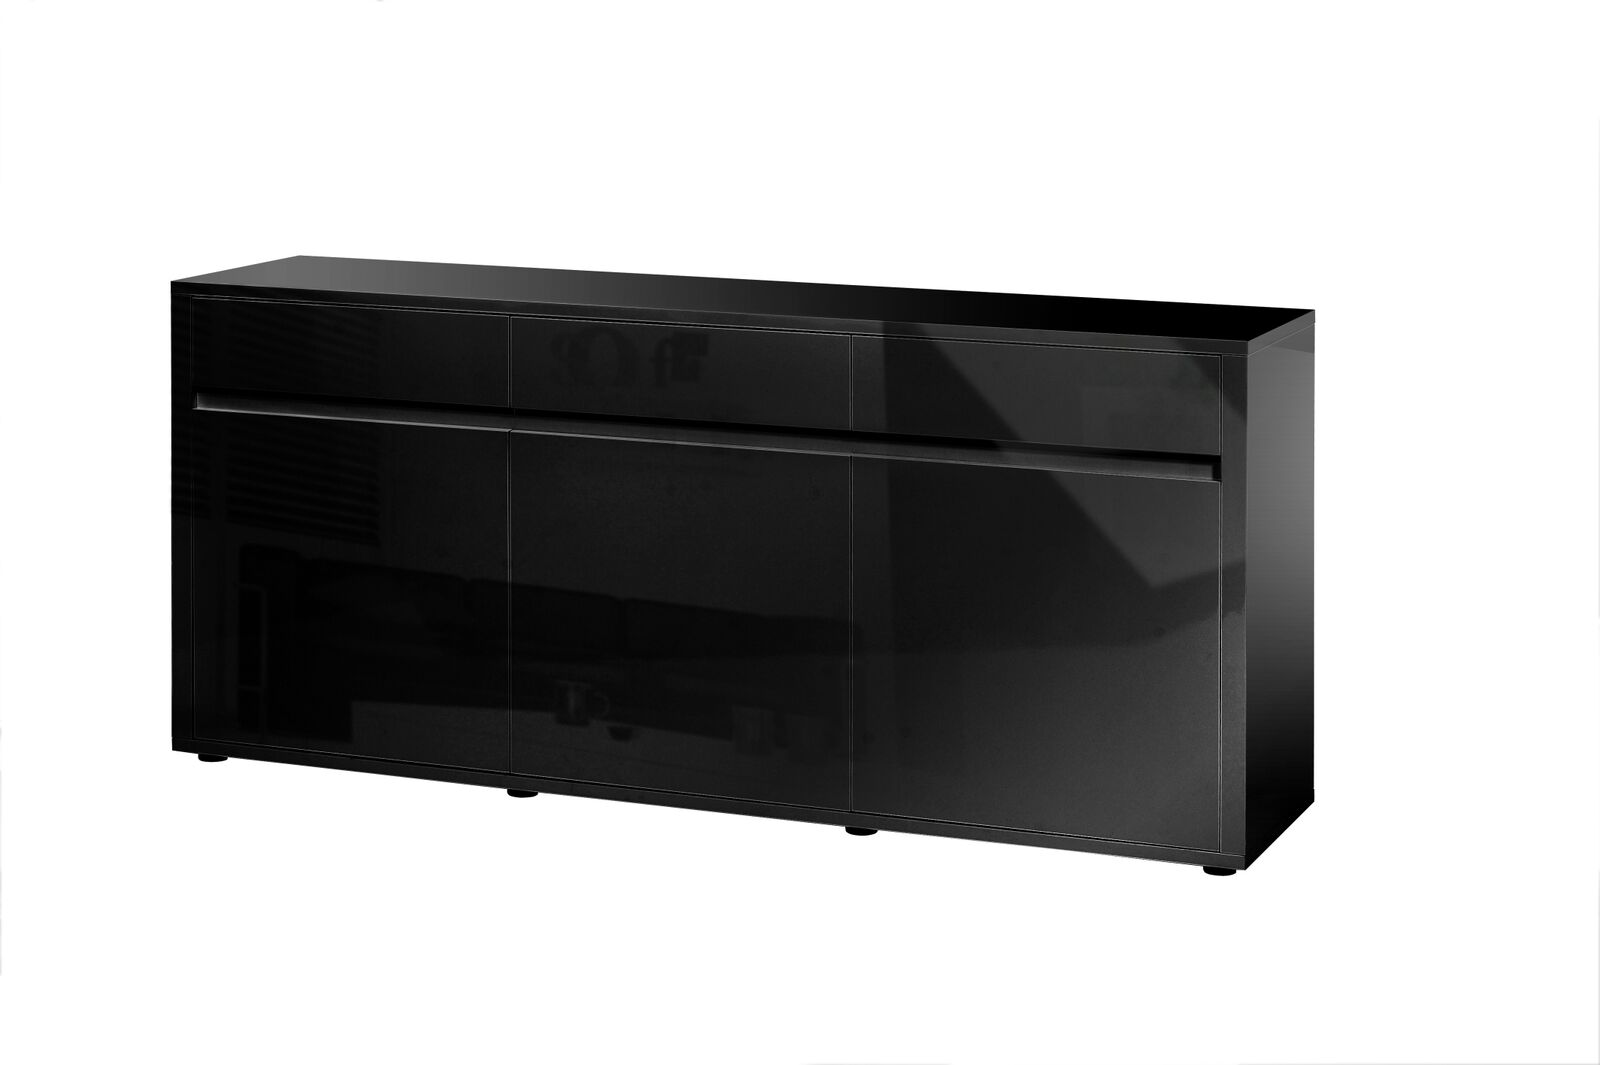 Urbana Black High Gloss Sideboard 3 Door 3 Drawer Fads # Meuble Tv Miami